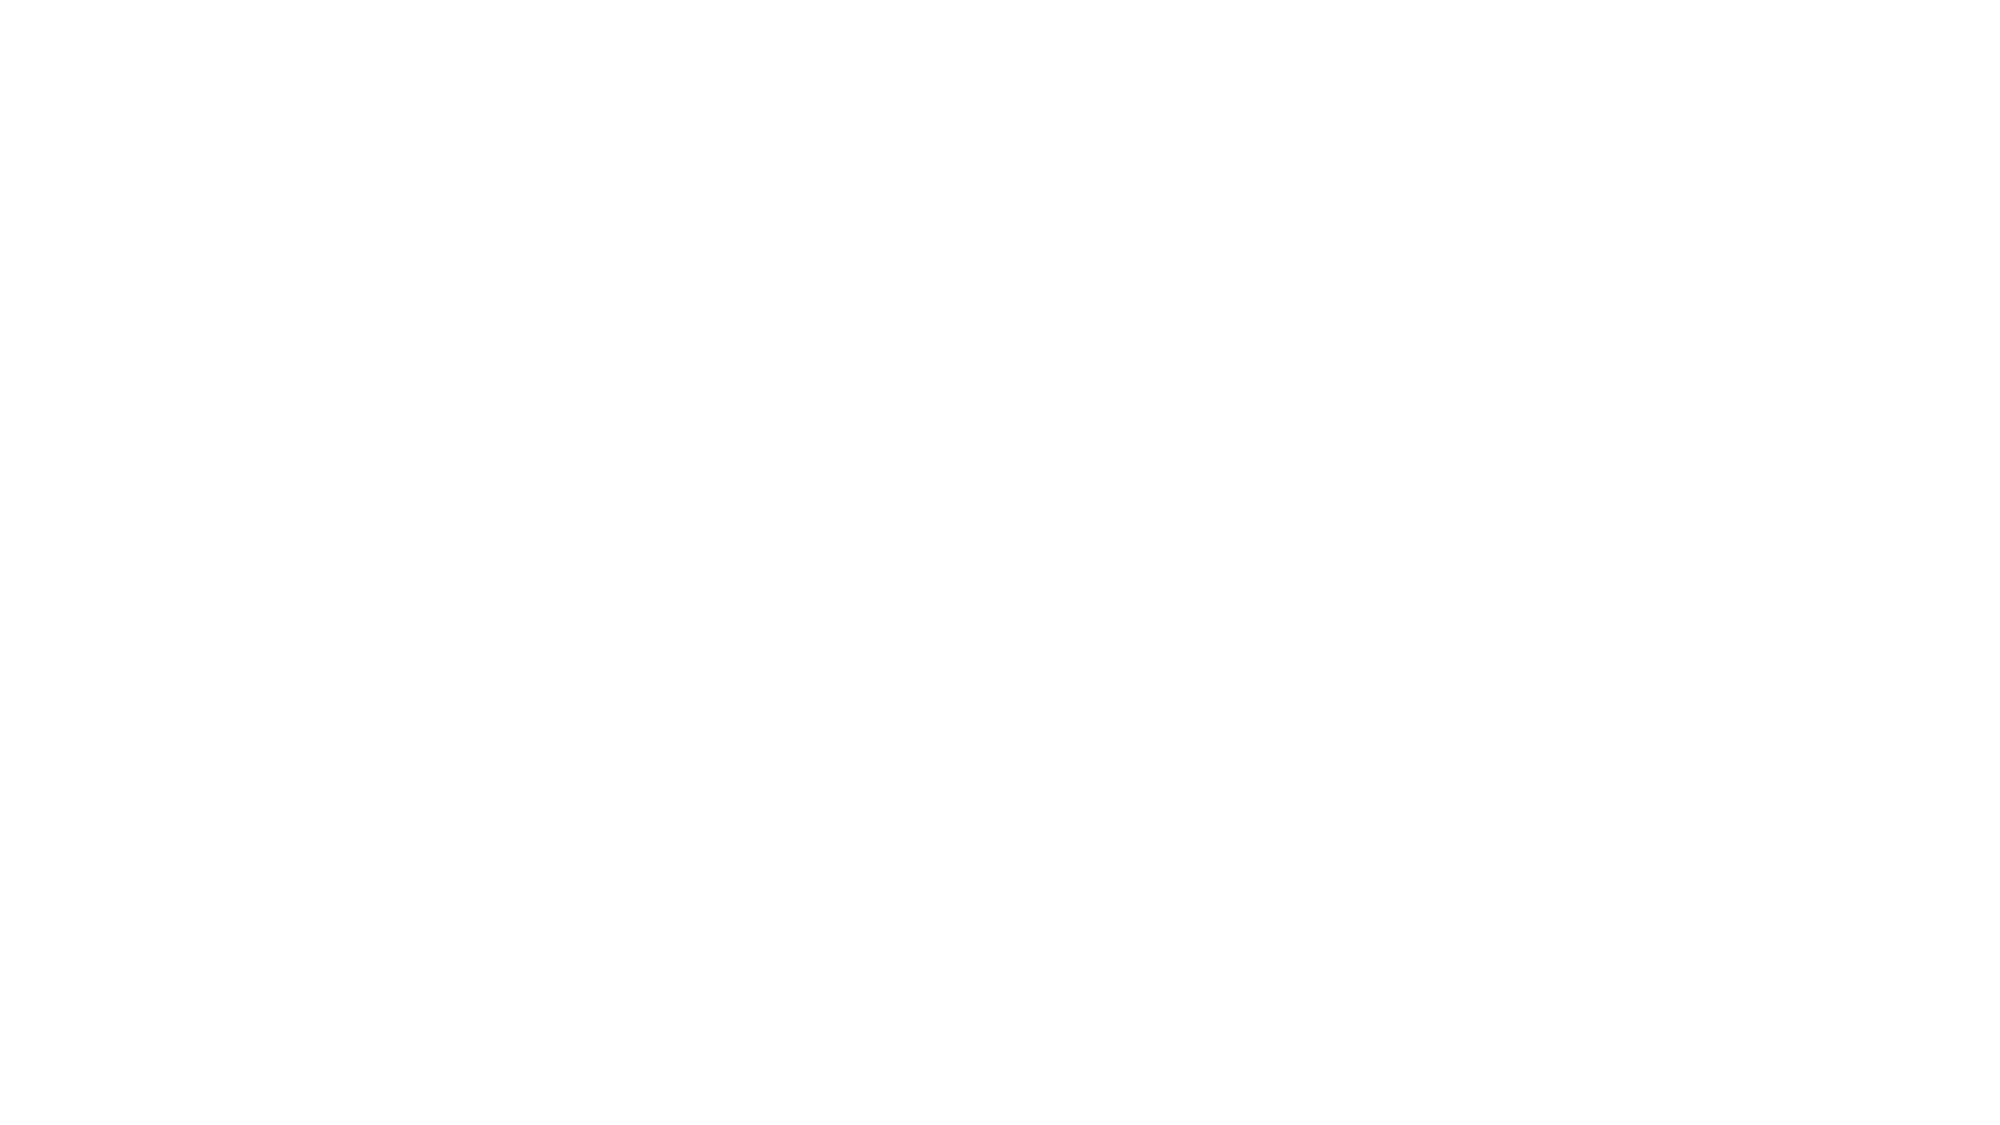 BUSINESS INNOVATION FORUM 2019 INDONESIA